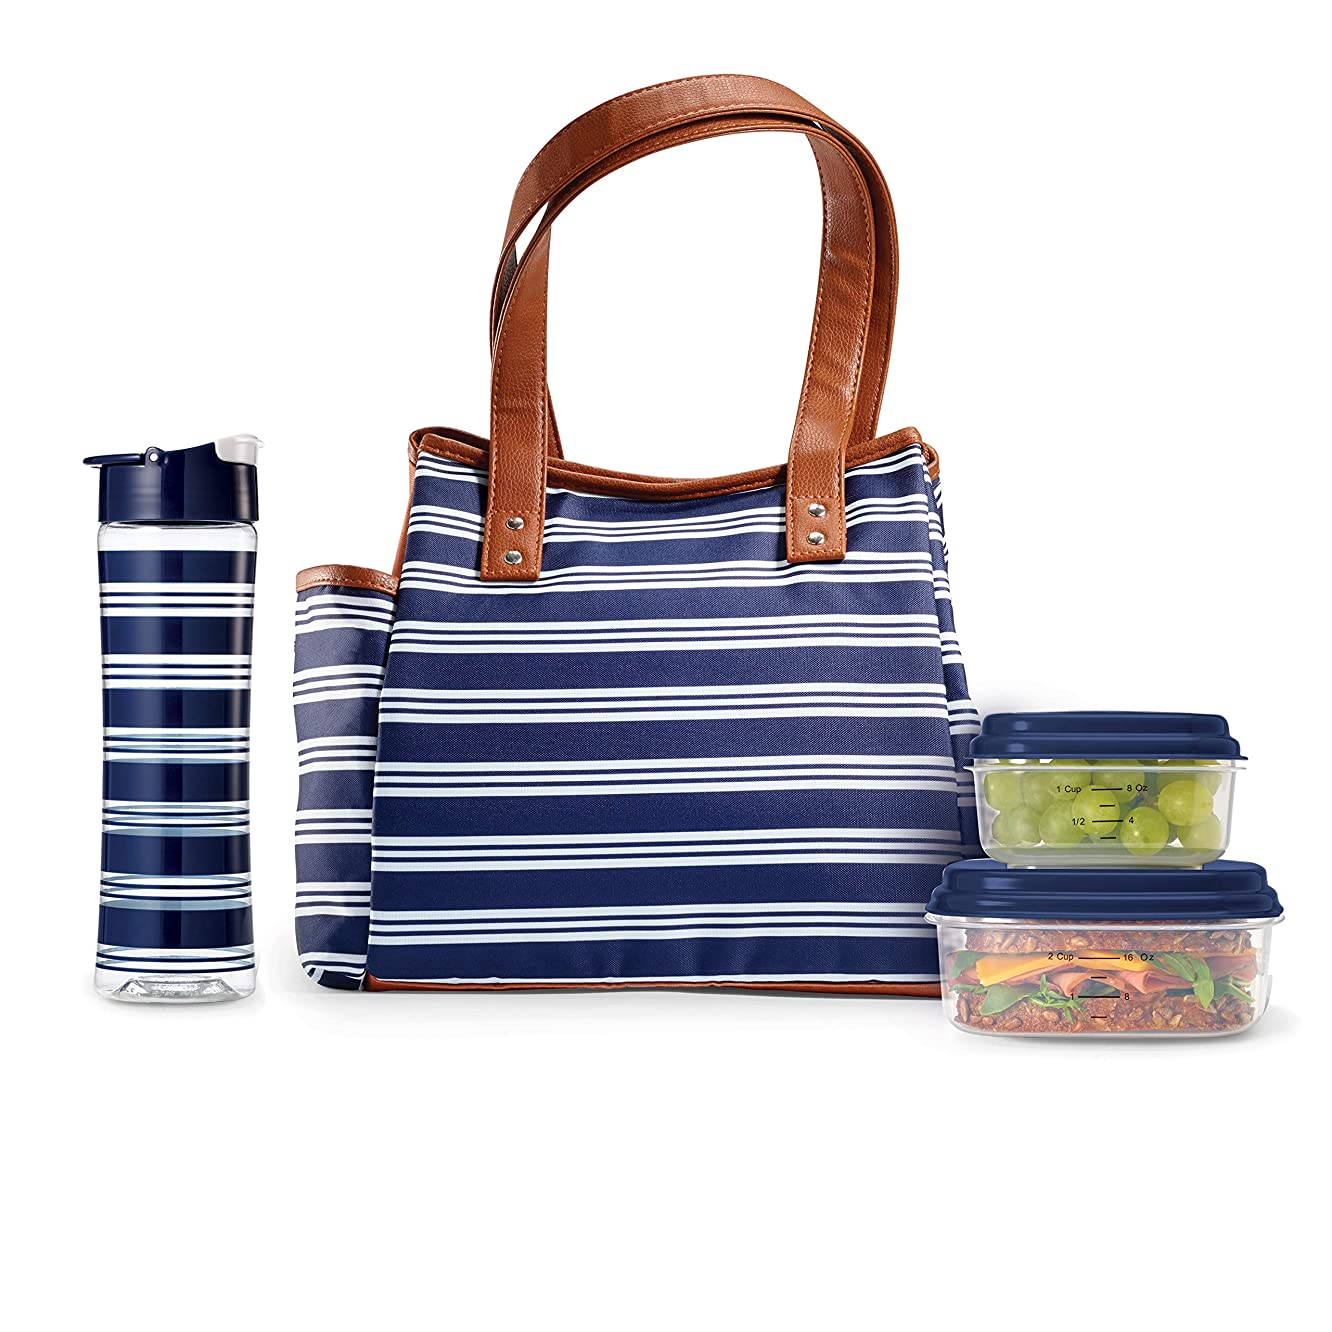 Fit & Fresh Insulated Lunch Bag Cooler Bag Tote Bag Kit for Women/Work/Picnic/Beach, Reusable Containers, Water Bottle, Westerly, Navy Stripe